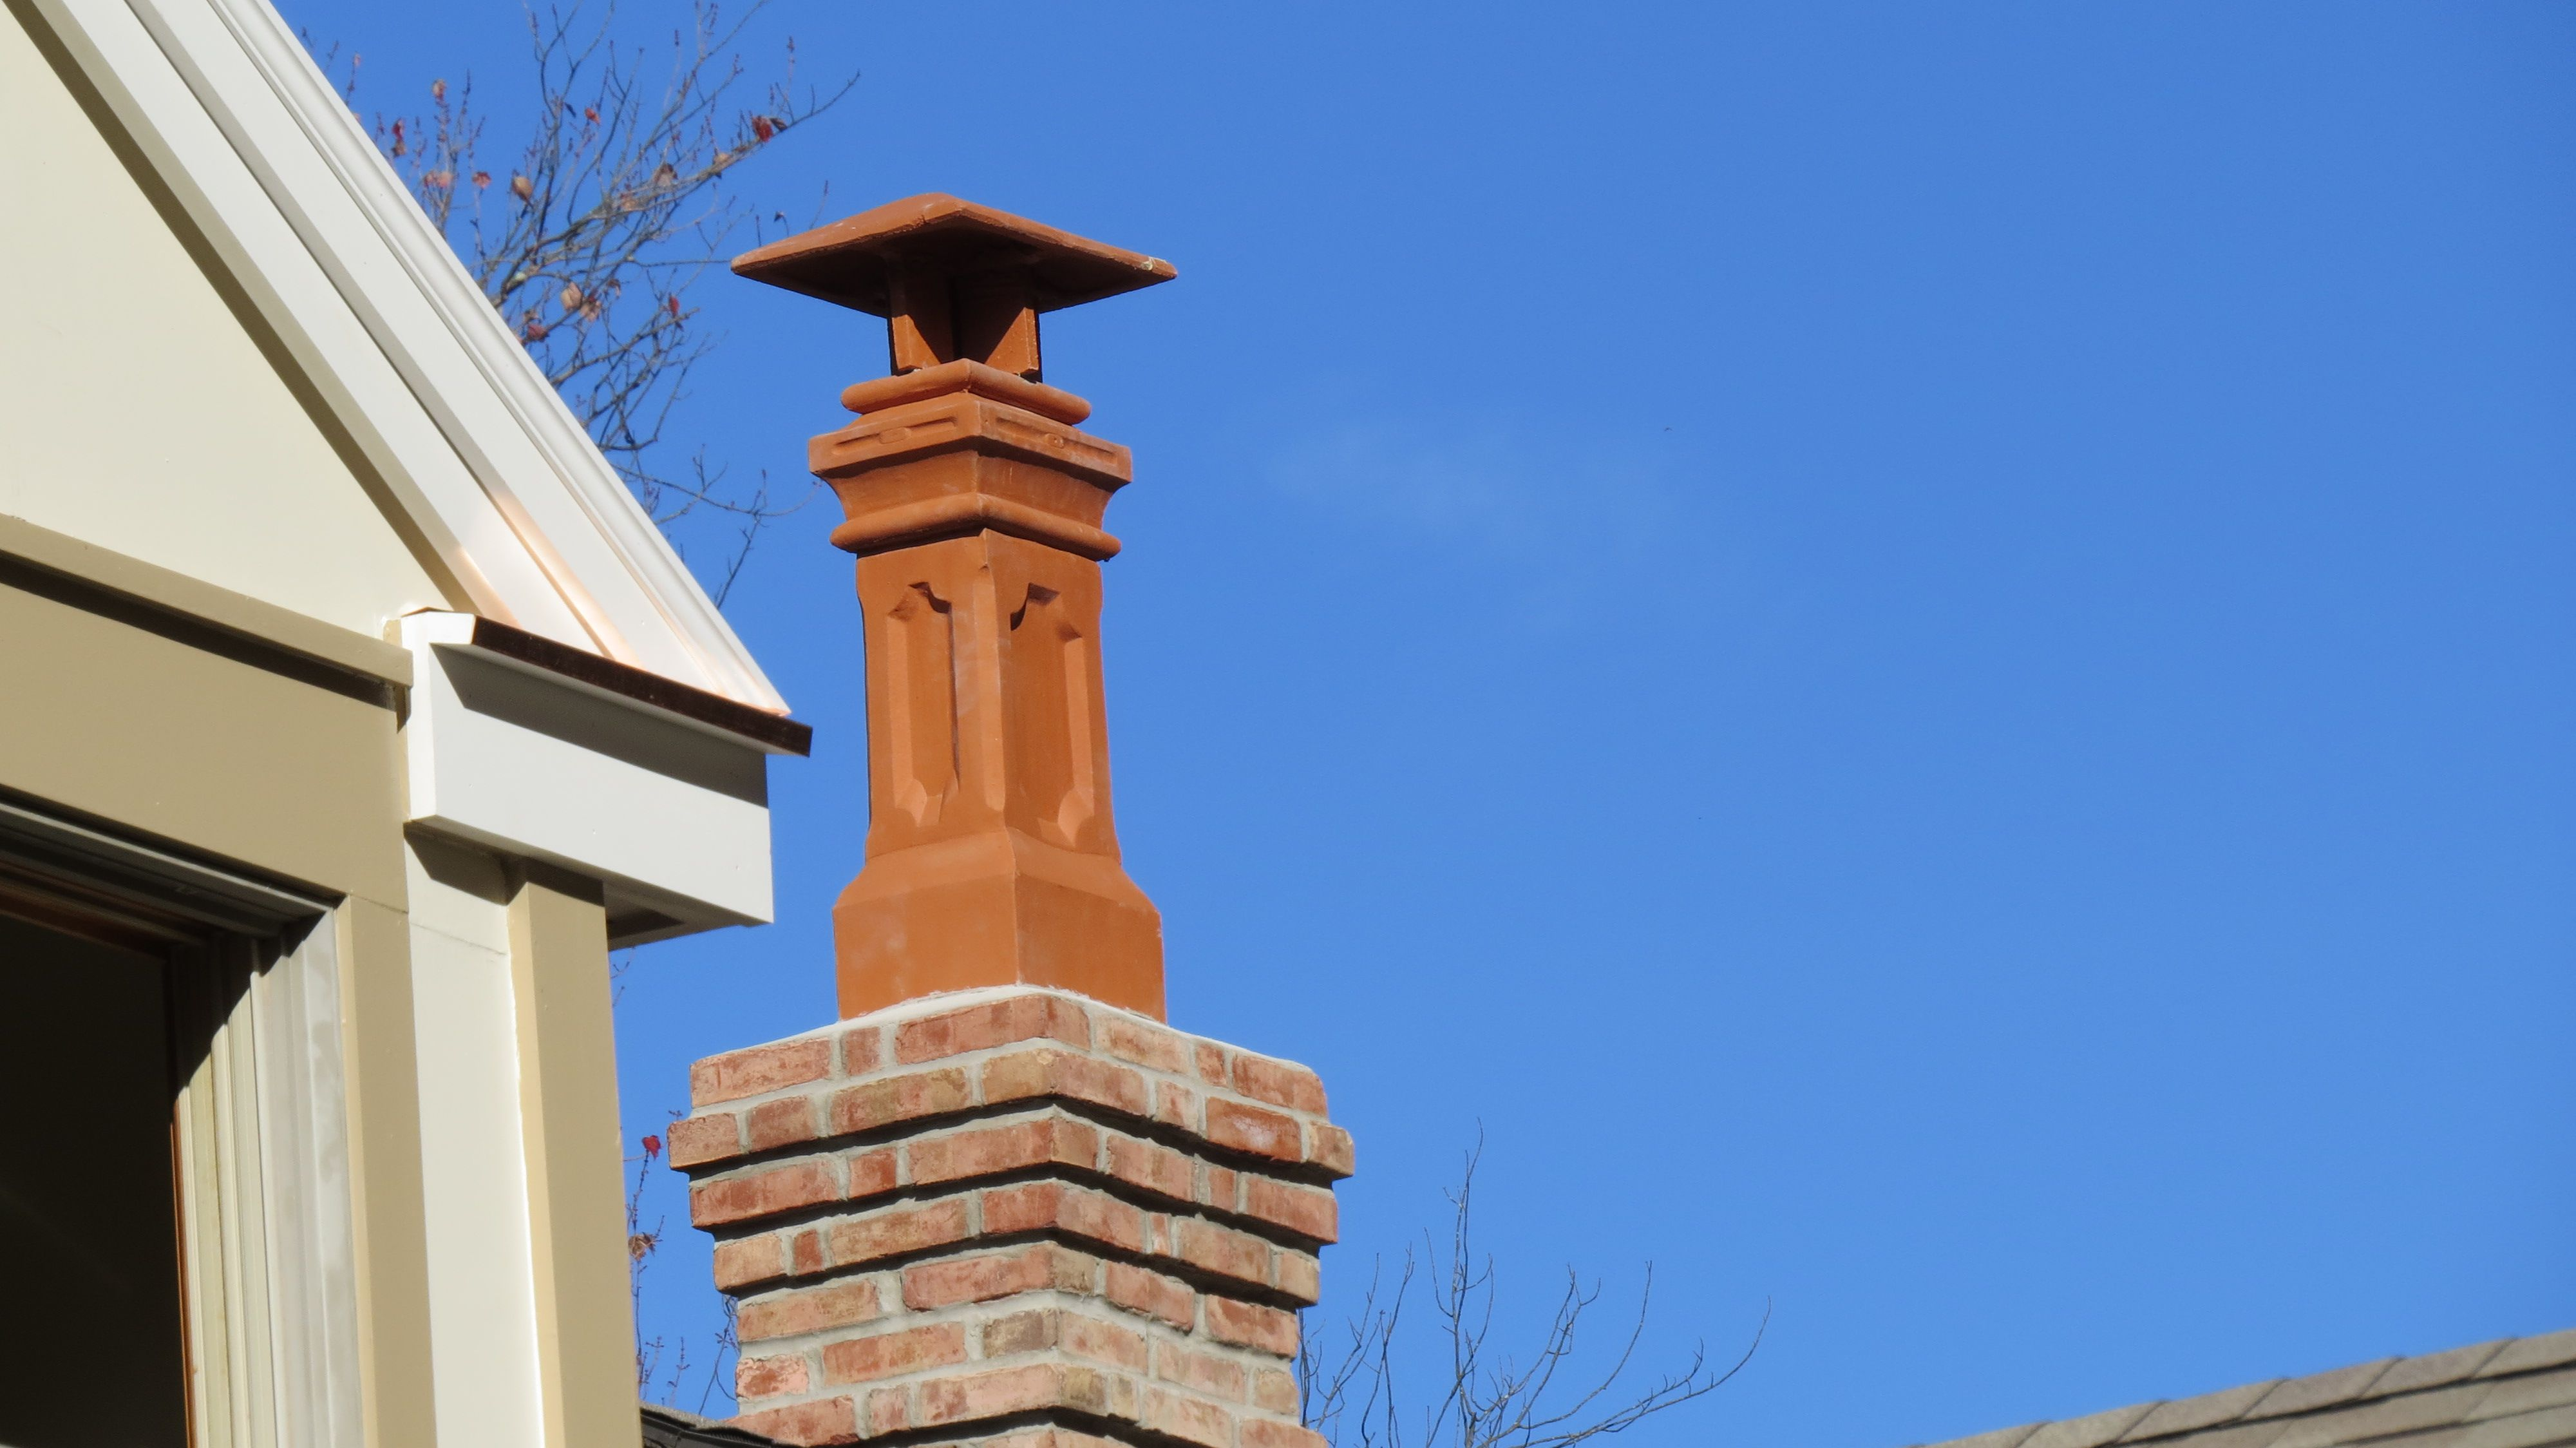 notice the stately lines of the govenor clay chimney pot with